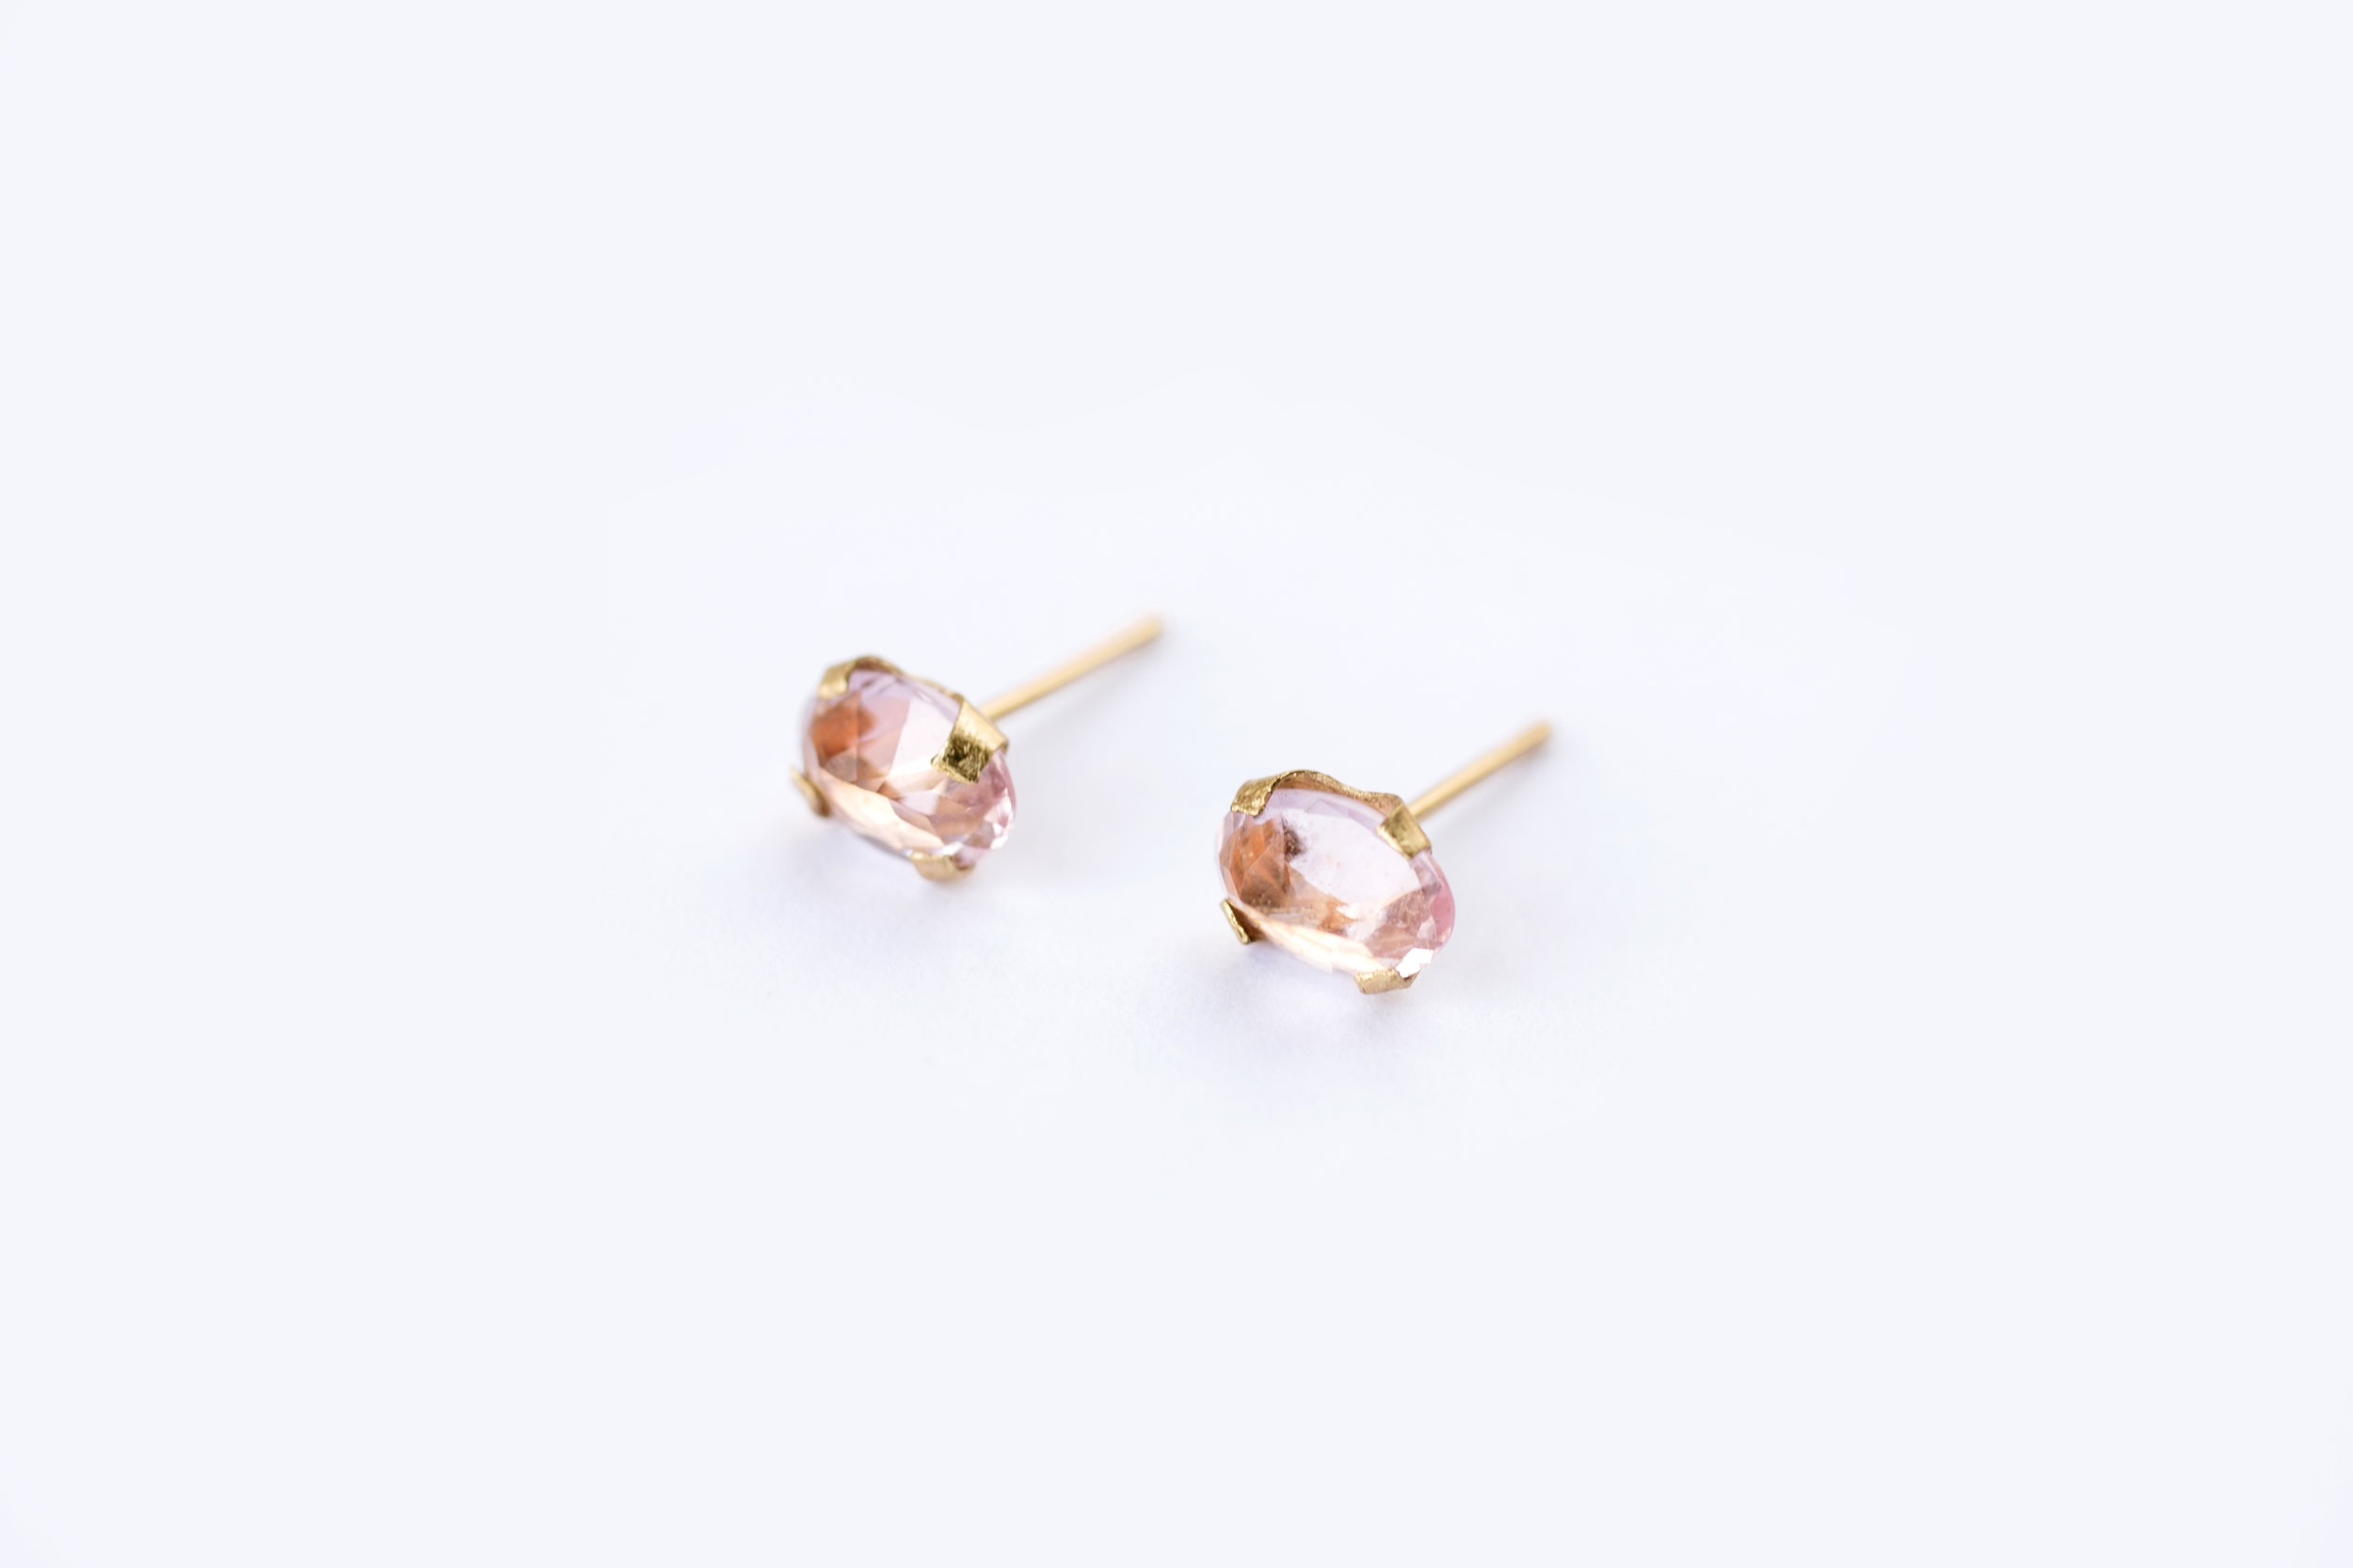 unique earring morganite for new diamond studs jewellery pink products gemstone stud attachments wave attachment earrings sale gold